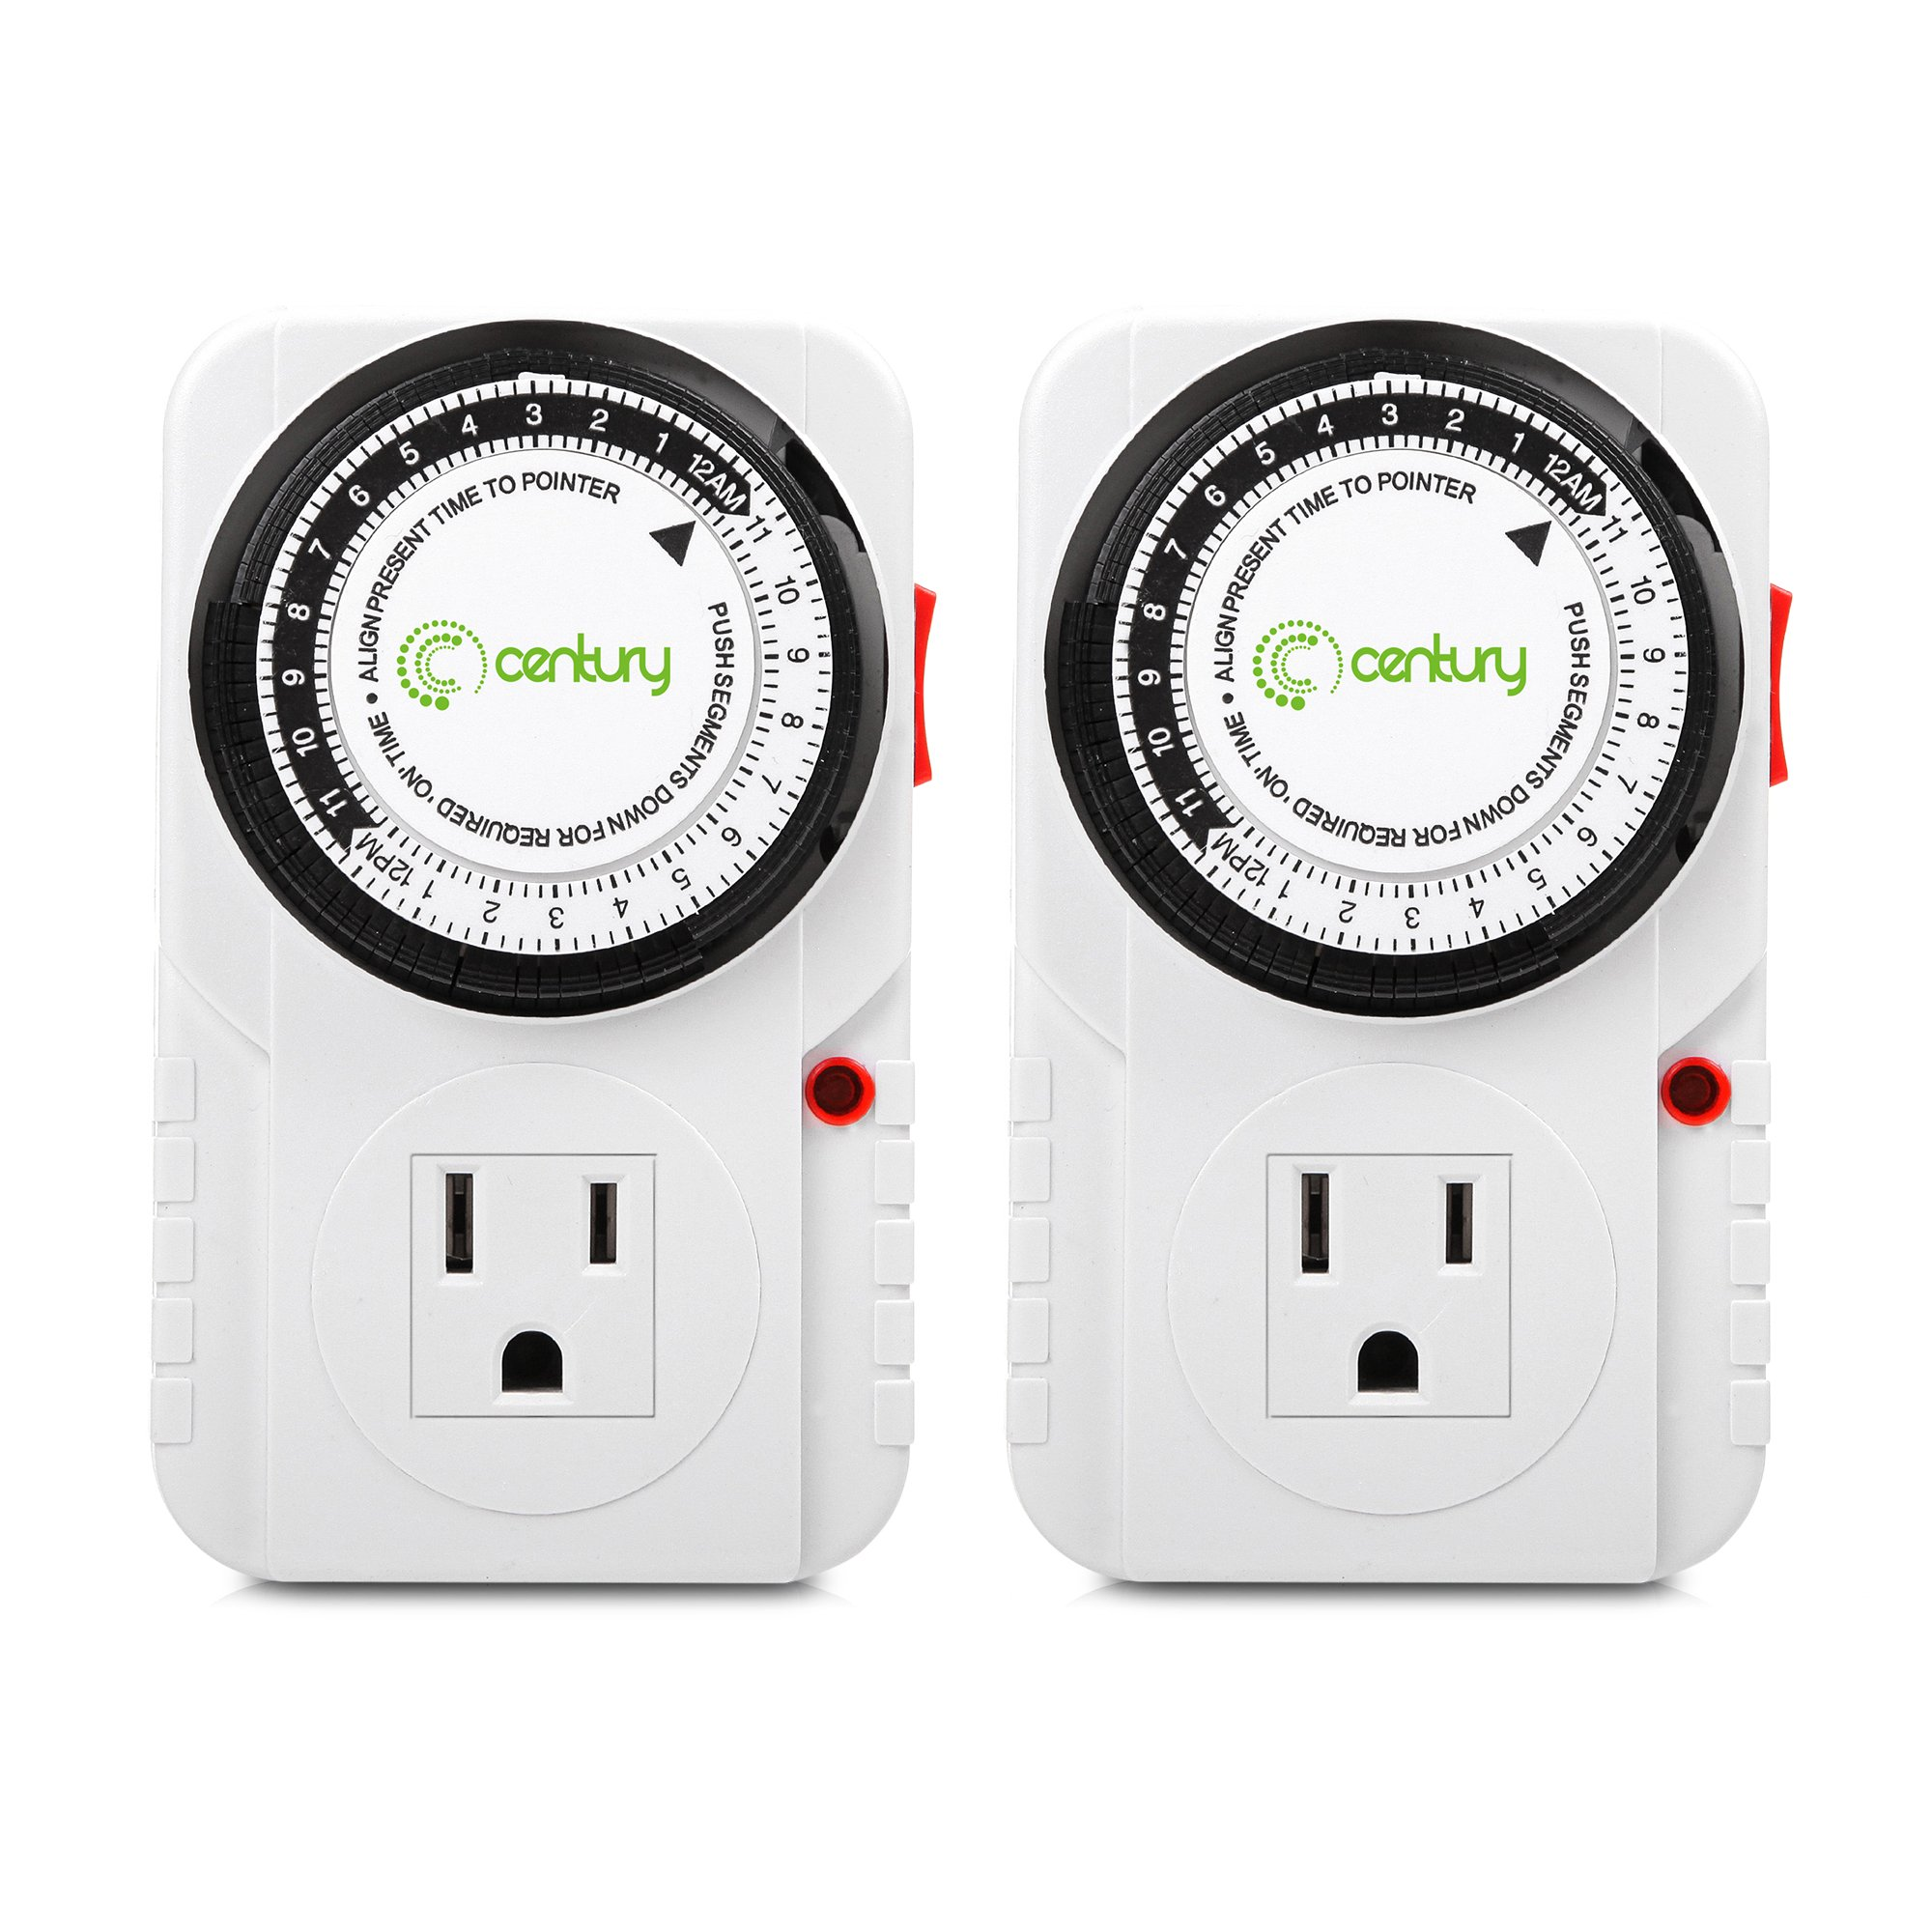 Century 24 Hour Plug-in Mechanical Timer Grounded 2 Pack